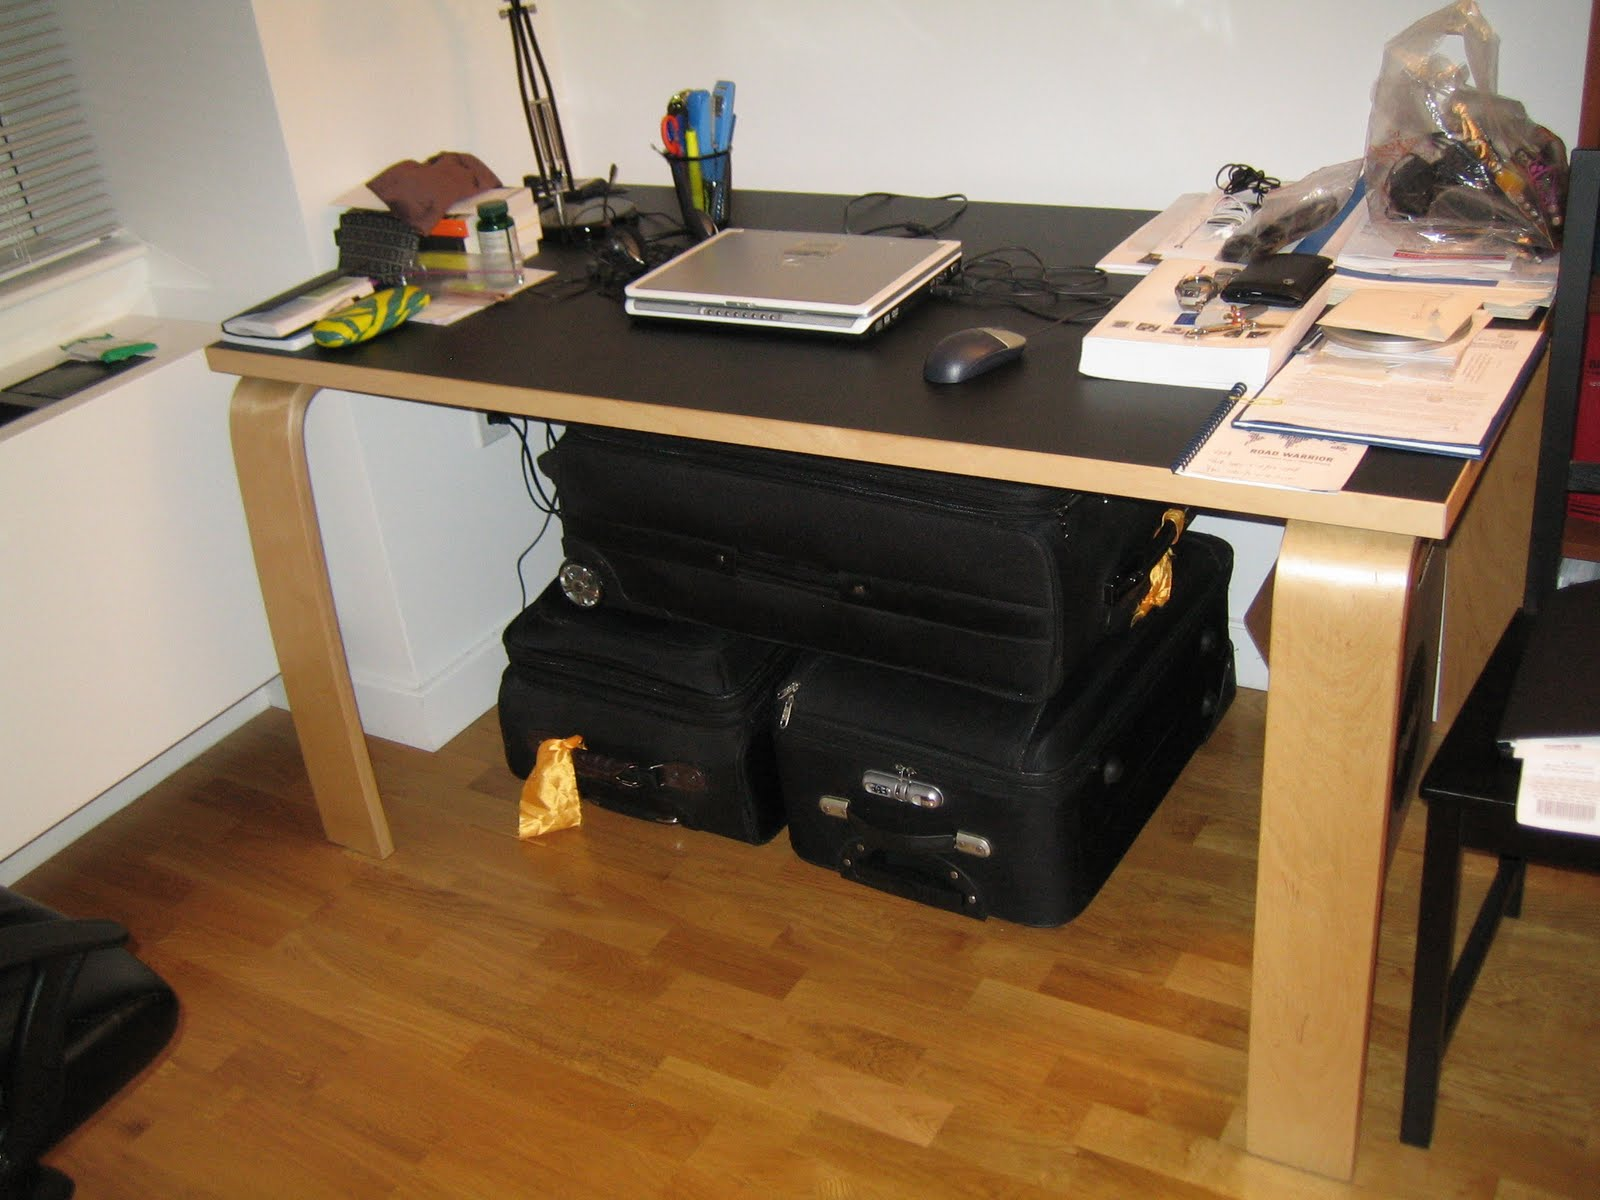 thomas the tank engine desk and chair pride z roosevelt island listings moving sale ikea tv stand